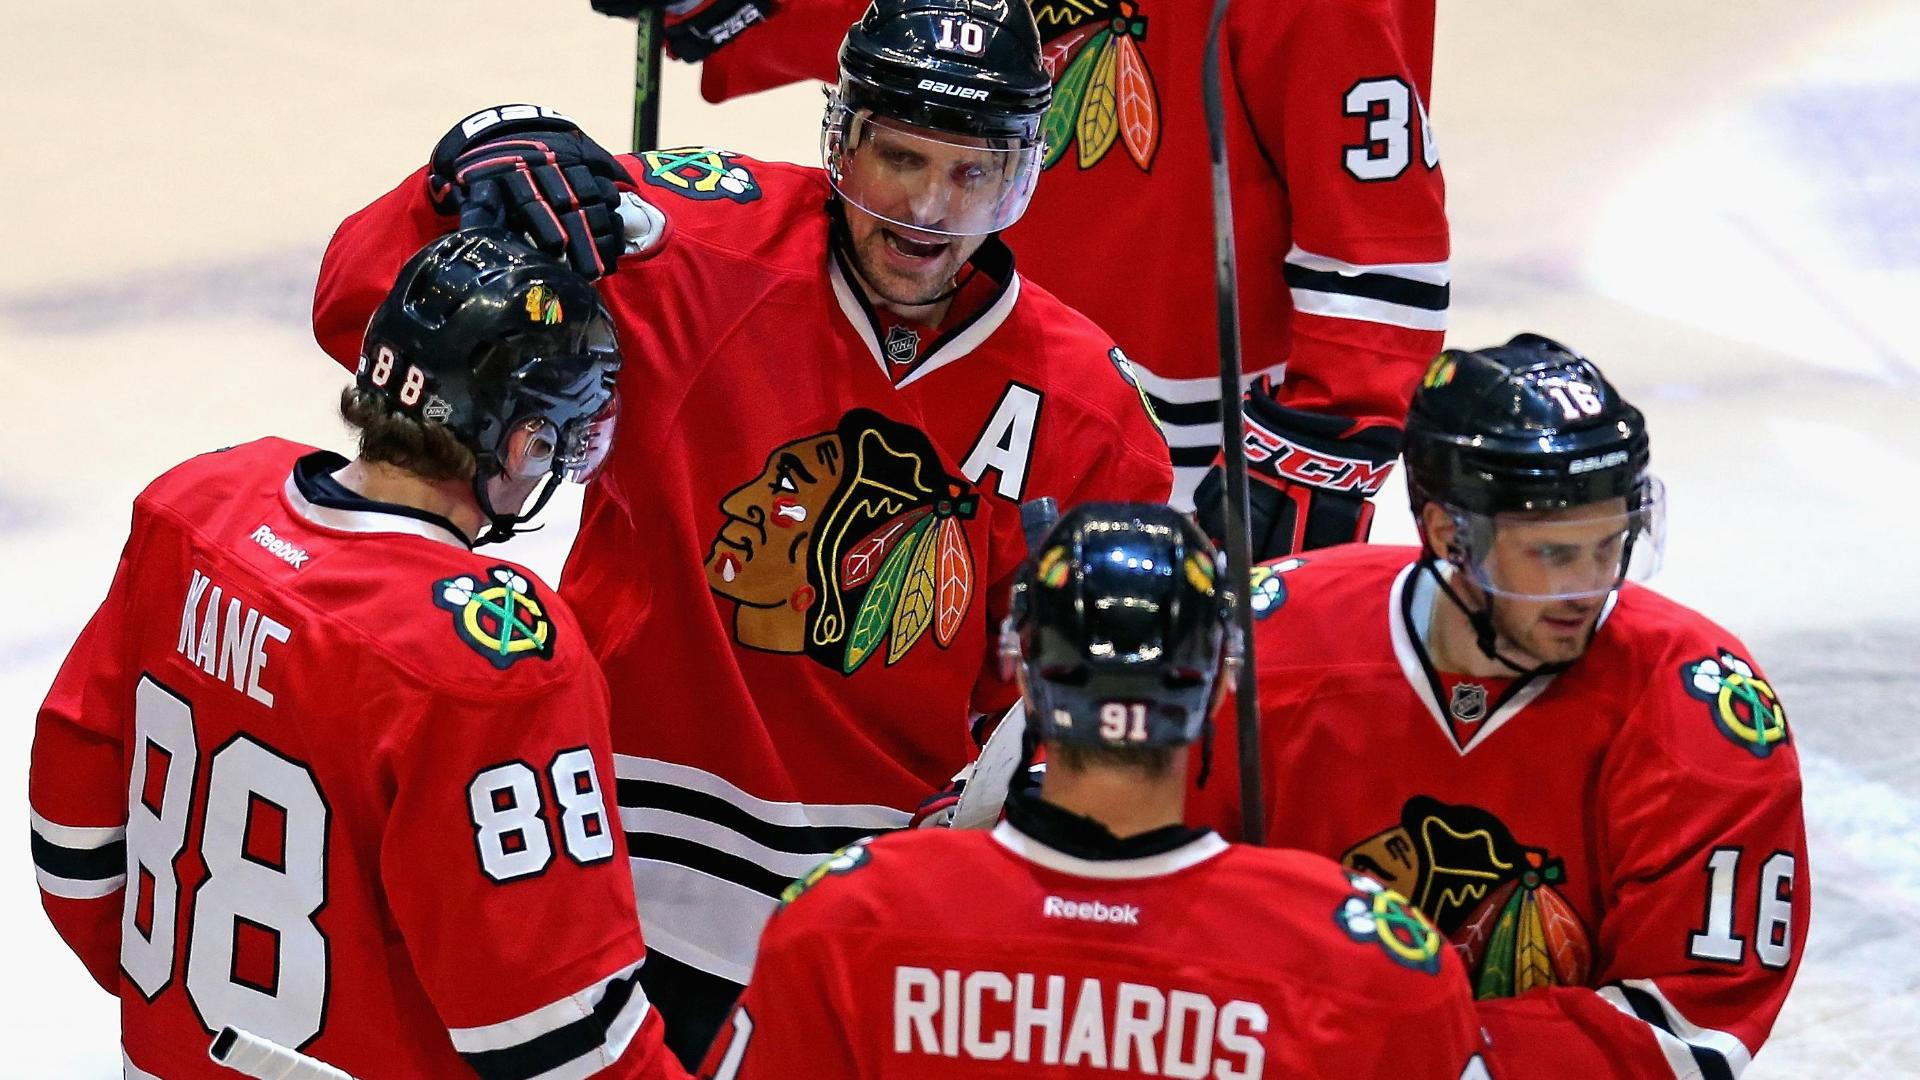 Video - Blackhawks Edge Penguins In Shootout